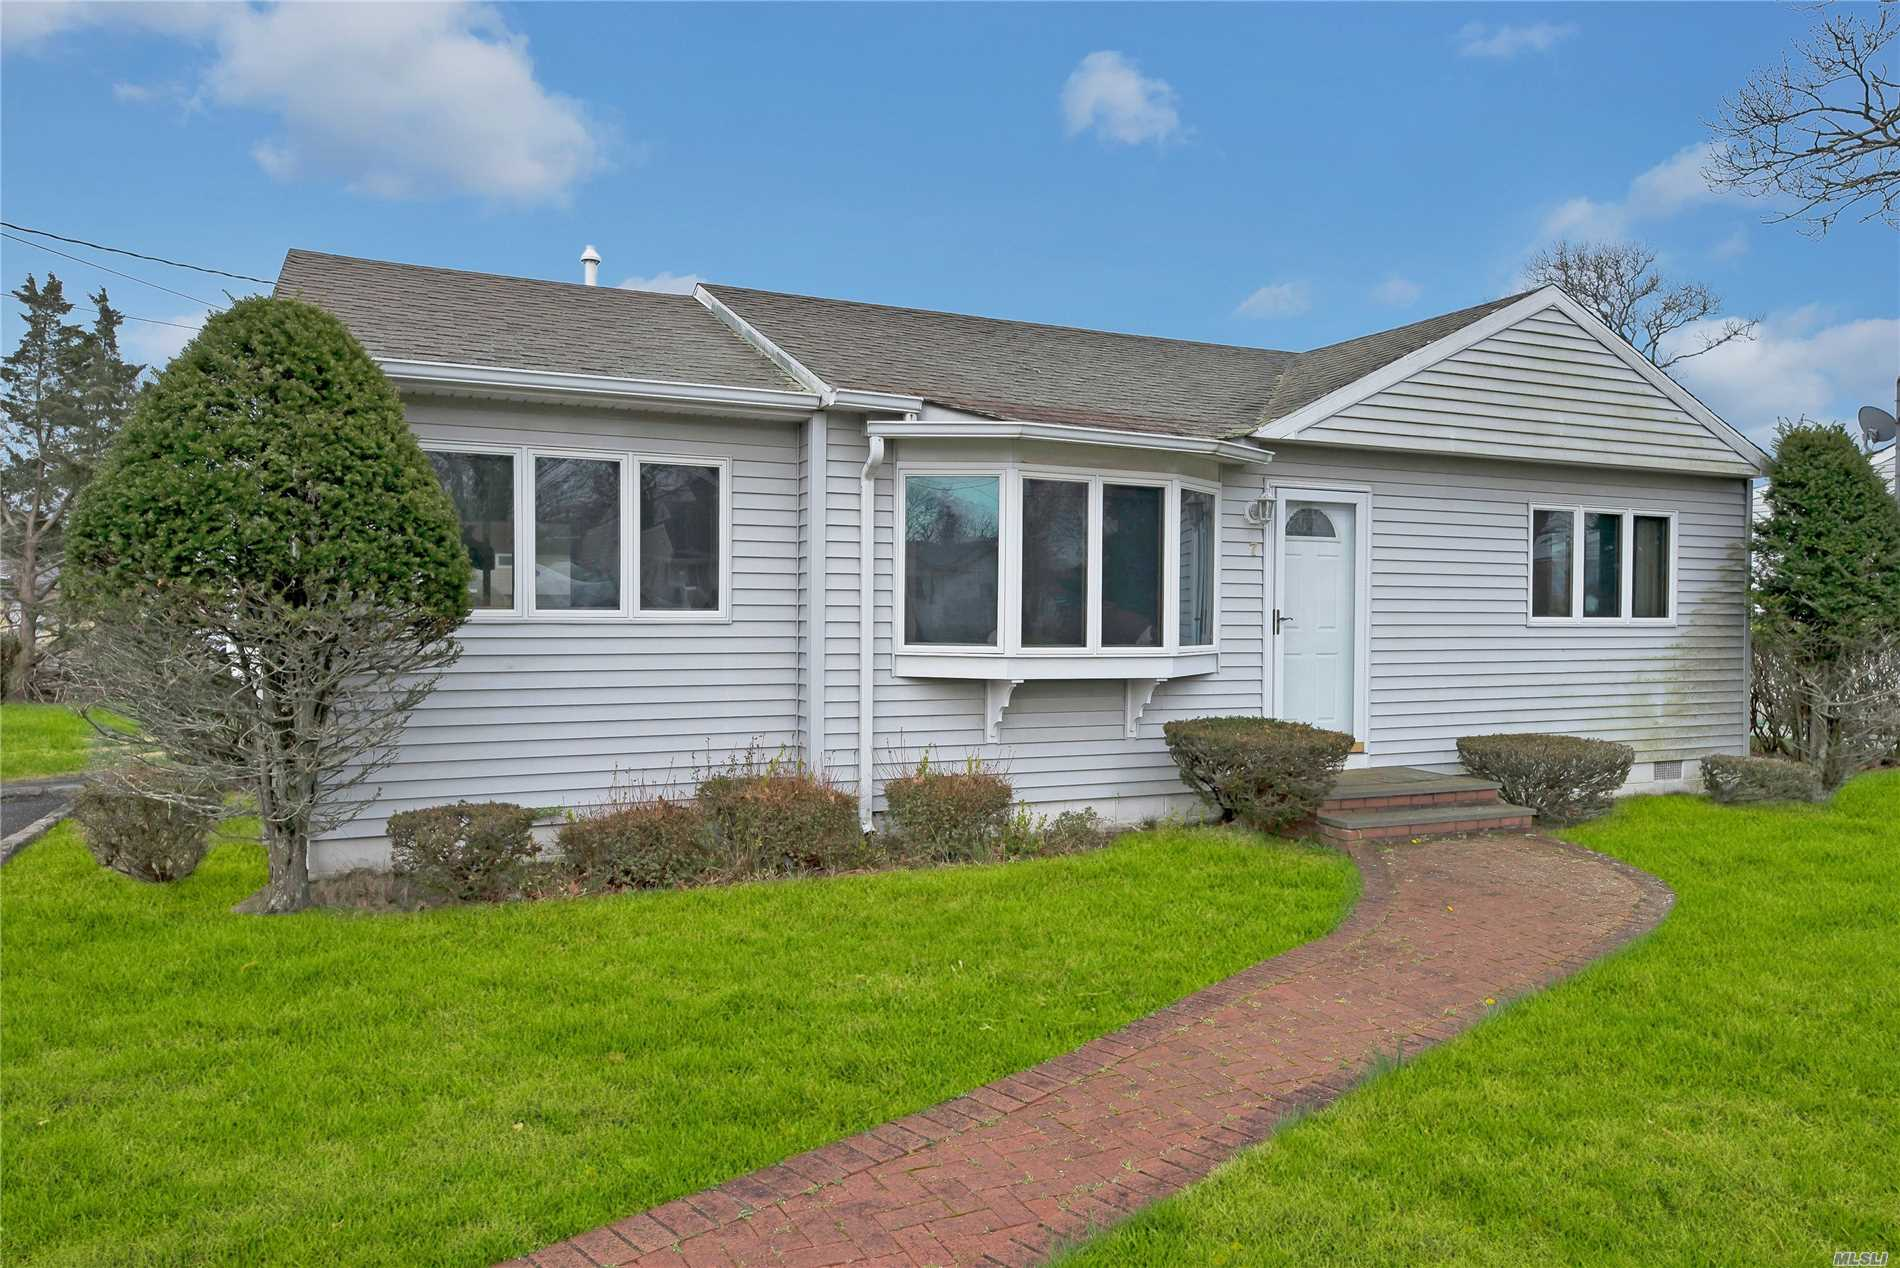 Great canal-front property boasting 2 bedrooms, 2 baths and a wonderful read deck. Fully air conditioned, it's ready for boating. jet skiing and all summer fun. Come see what this low price can get you.